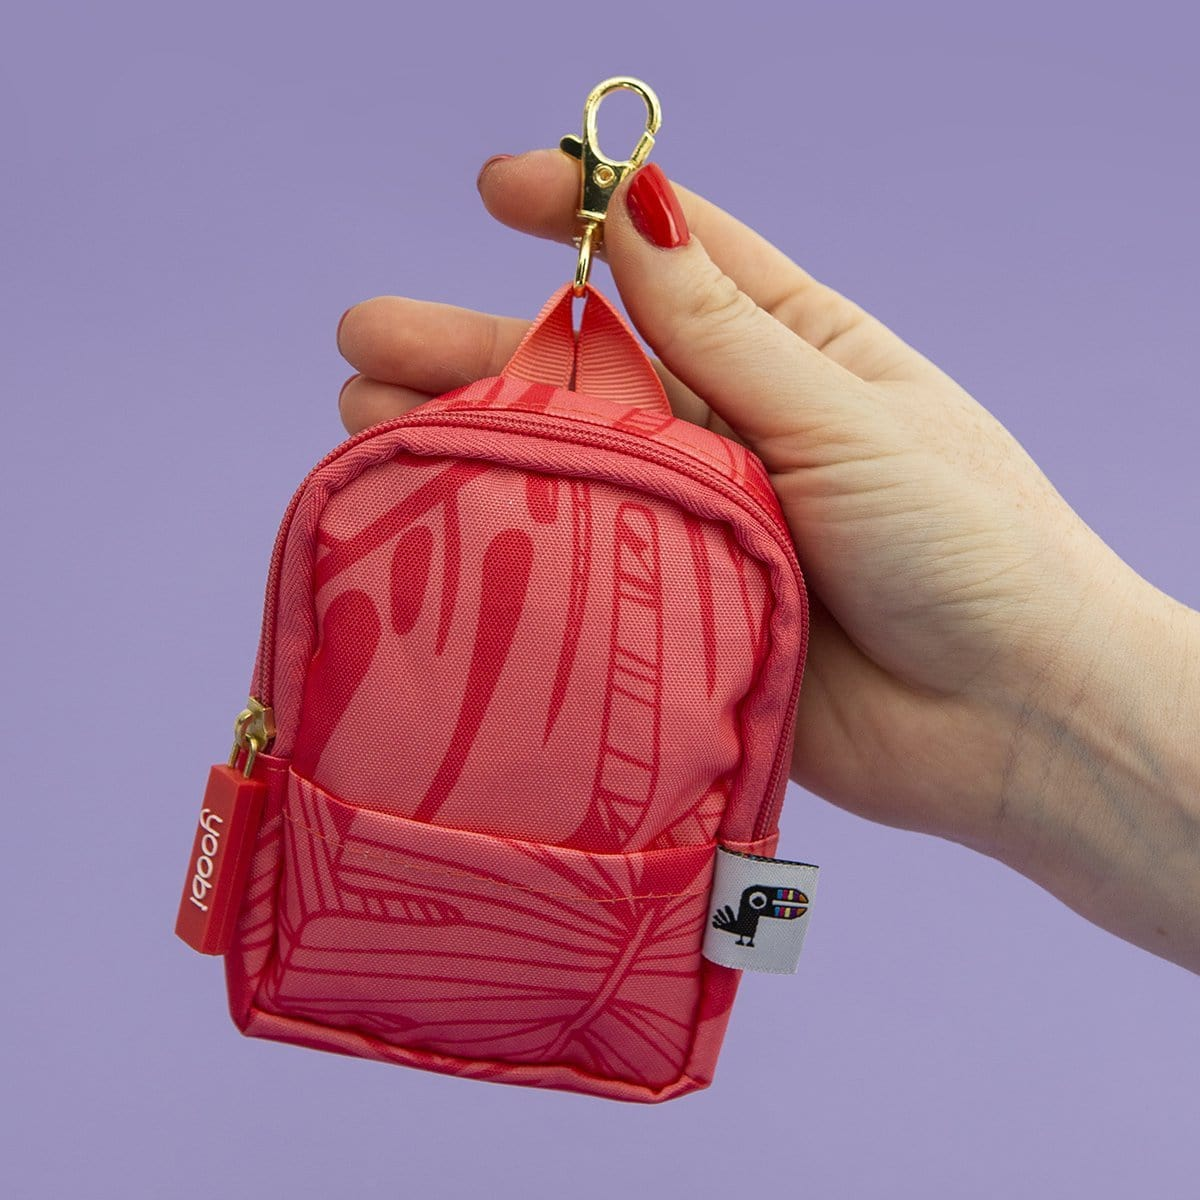 Mini Backpack Coin Purse - Coral Palm